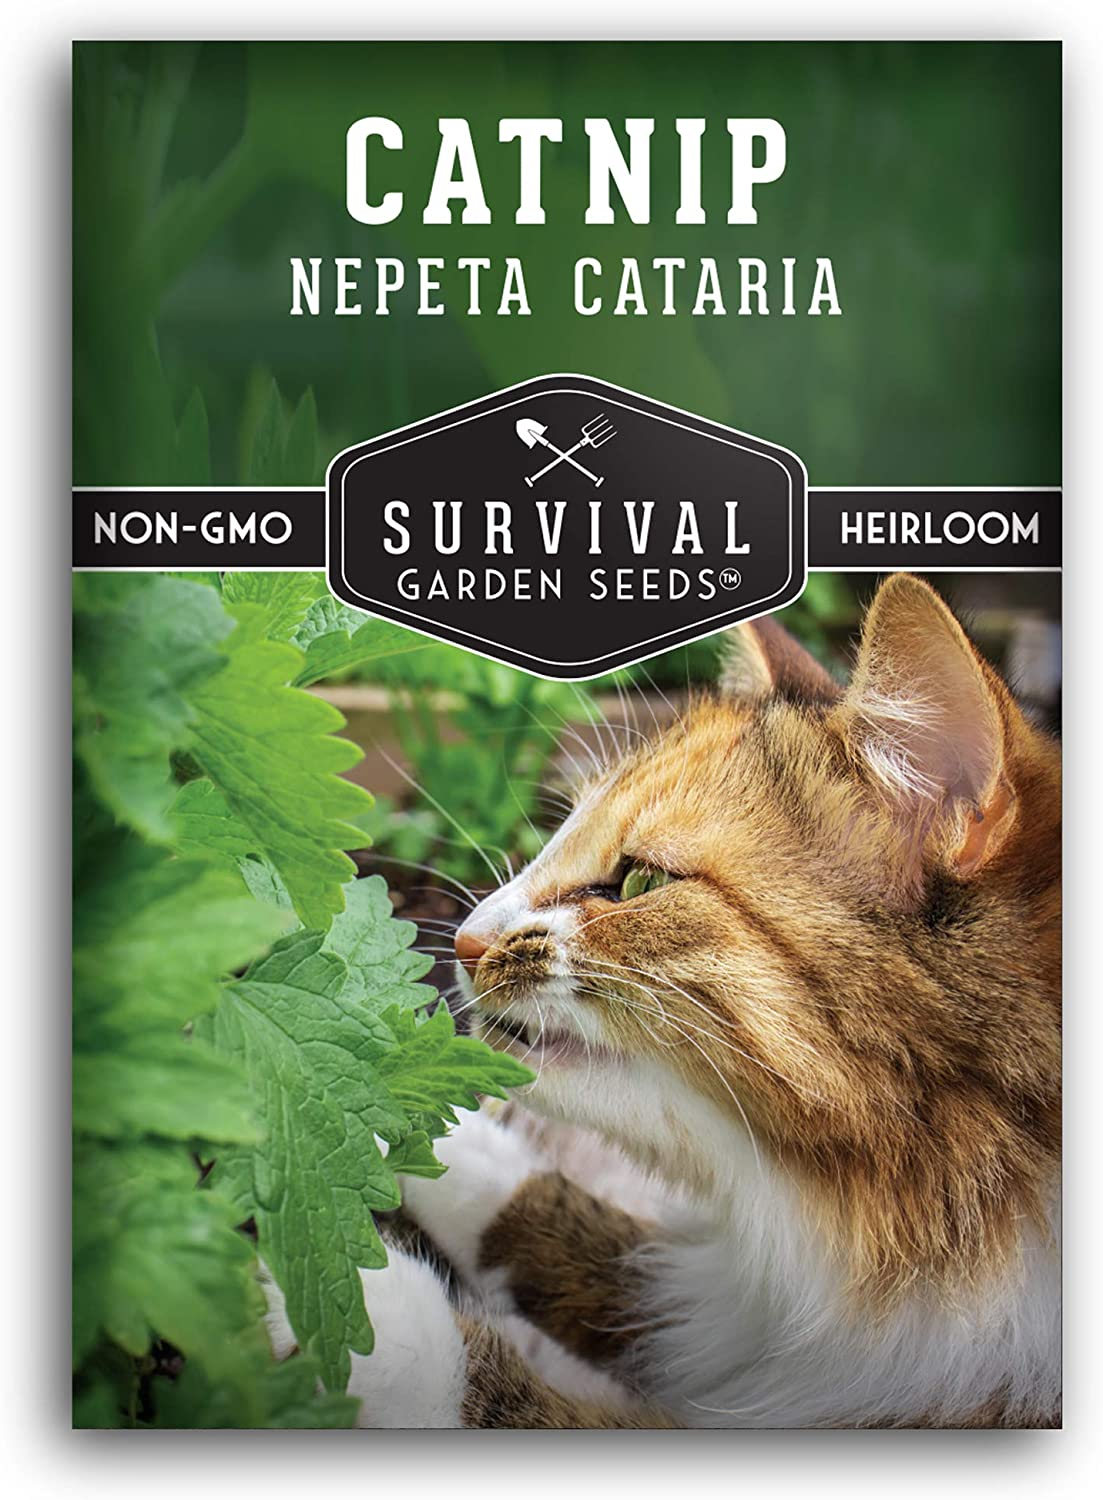 Survival Garden Seeds - Catnip Seed for Planting - Packet with Instructions to Plant and Grow in Your Home Vegetable Garden - Non-GMO Heirloom Variety